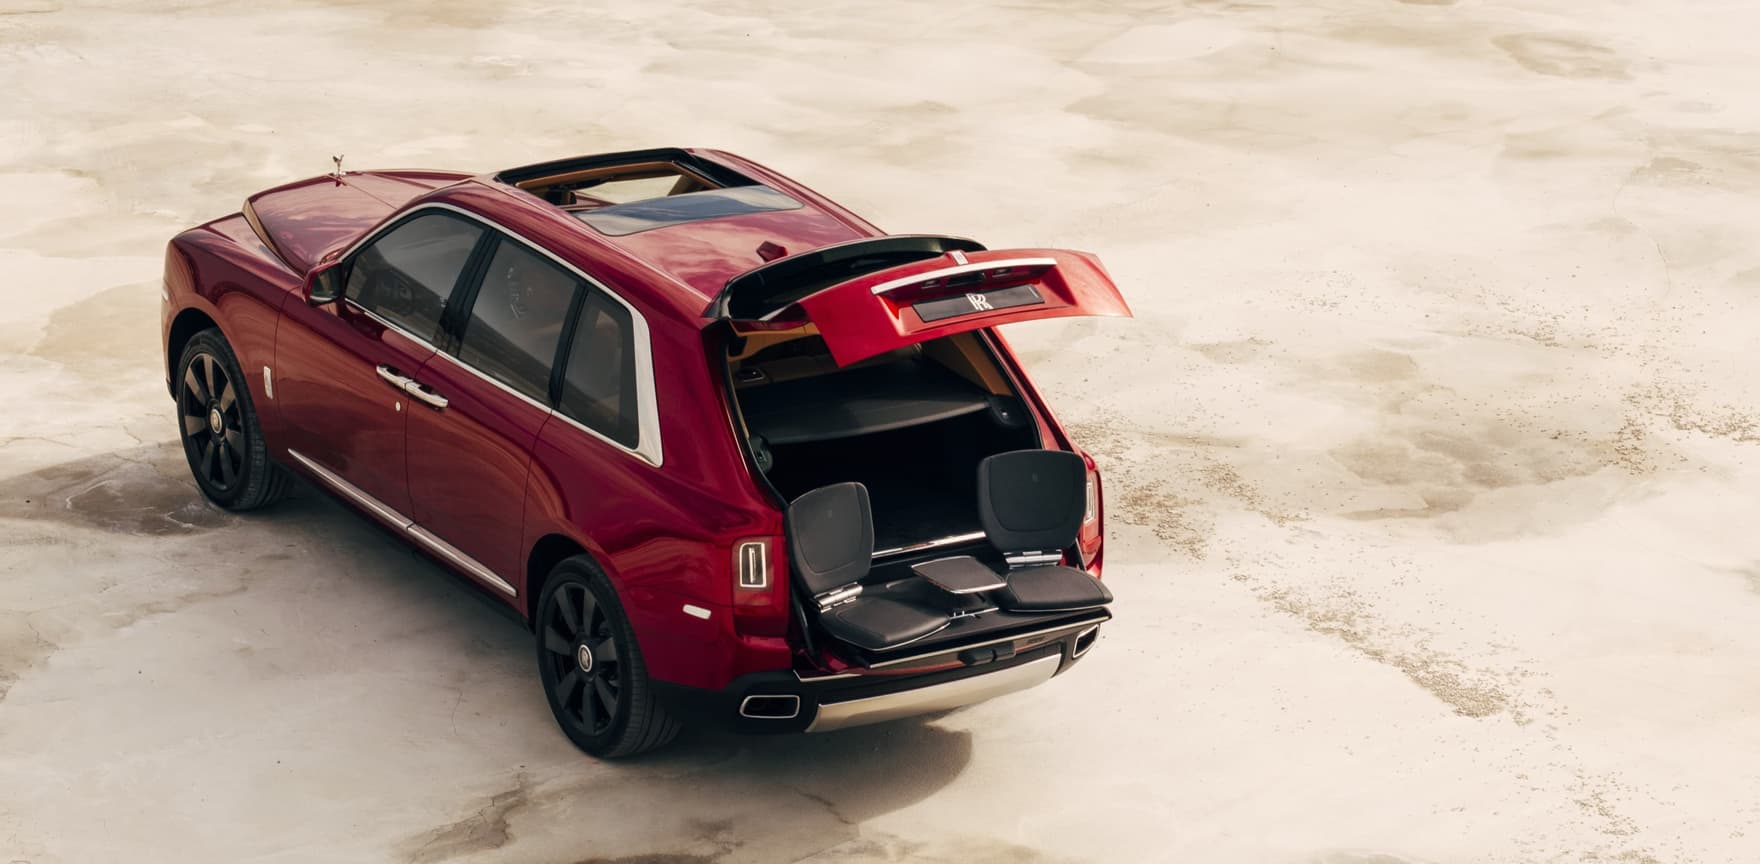 Aerial rear view of stationary Rolls-Royce Cullinan motor car with rear door open revealing the bespoke Cullinan Viewing Suite